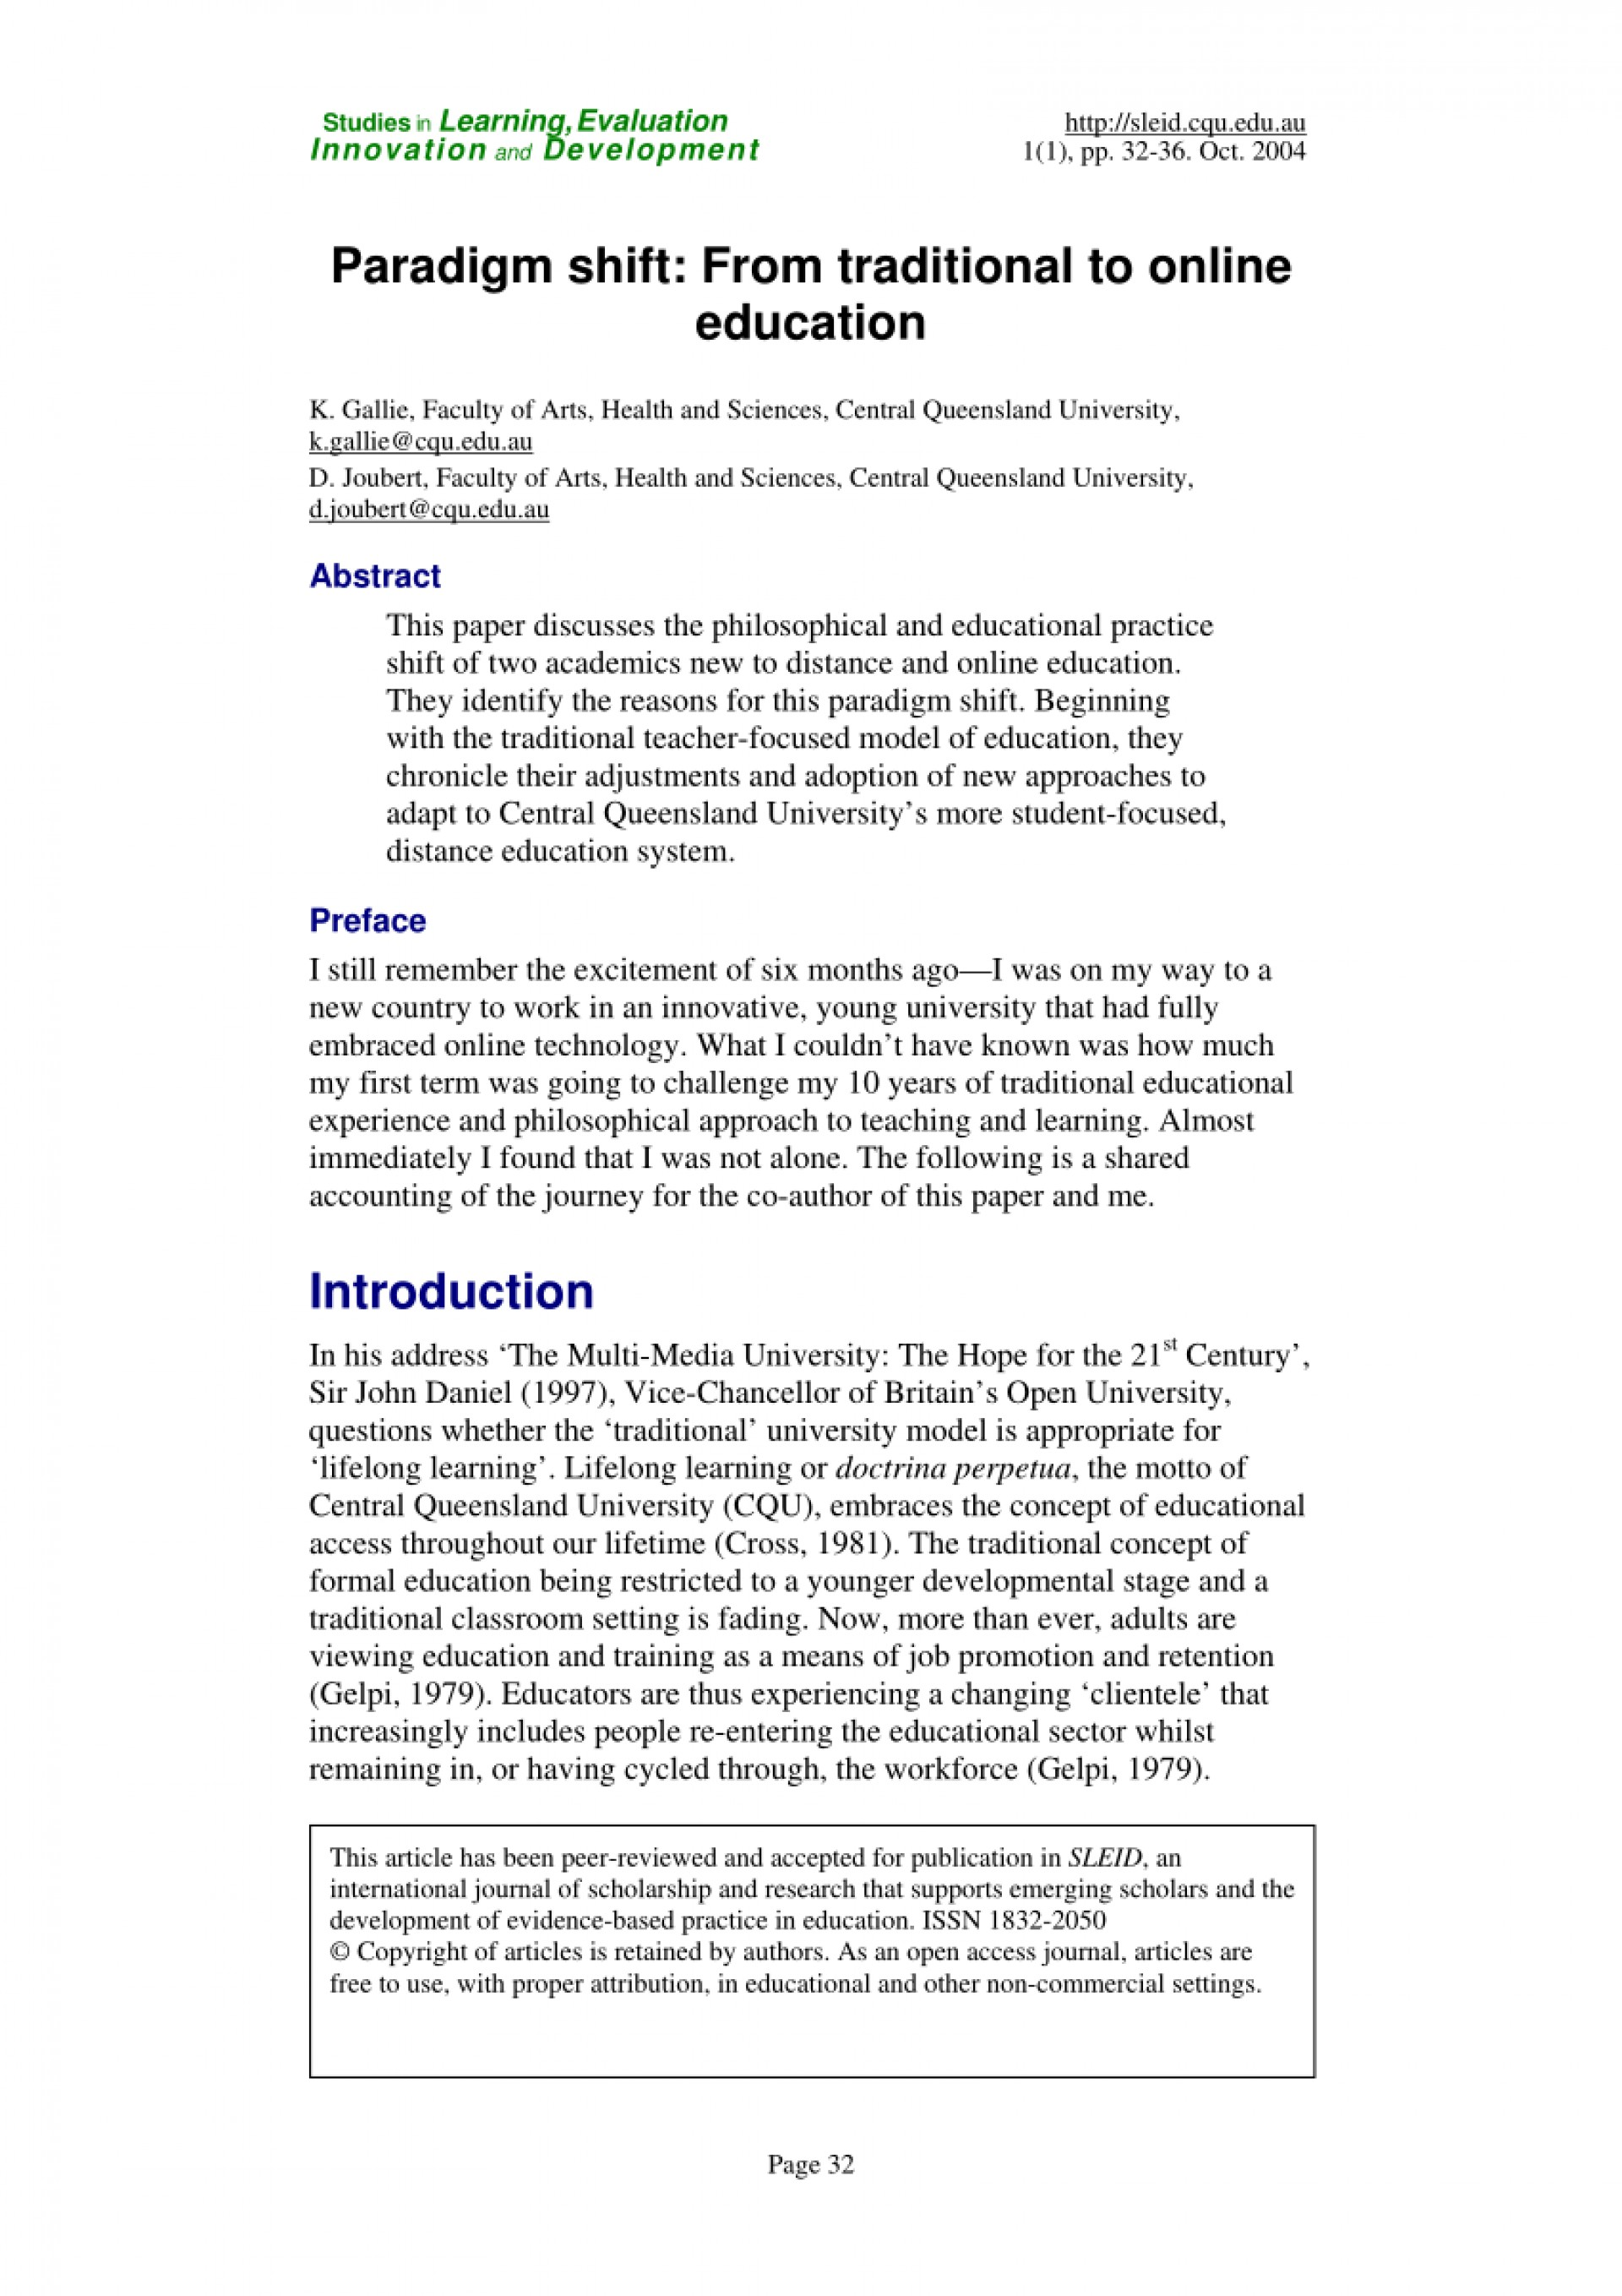 001 Research Papers Online Education Paper Unique In Physical And Sports Pdf On Ict Distance 1920